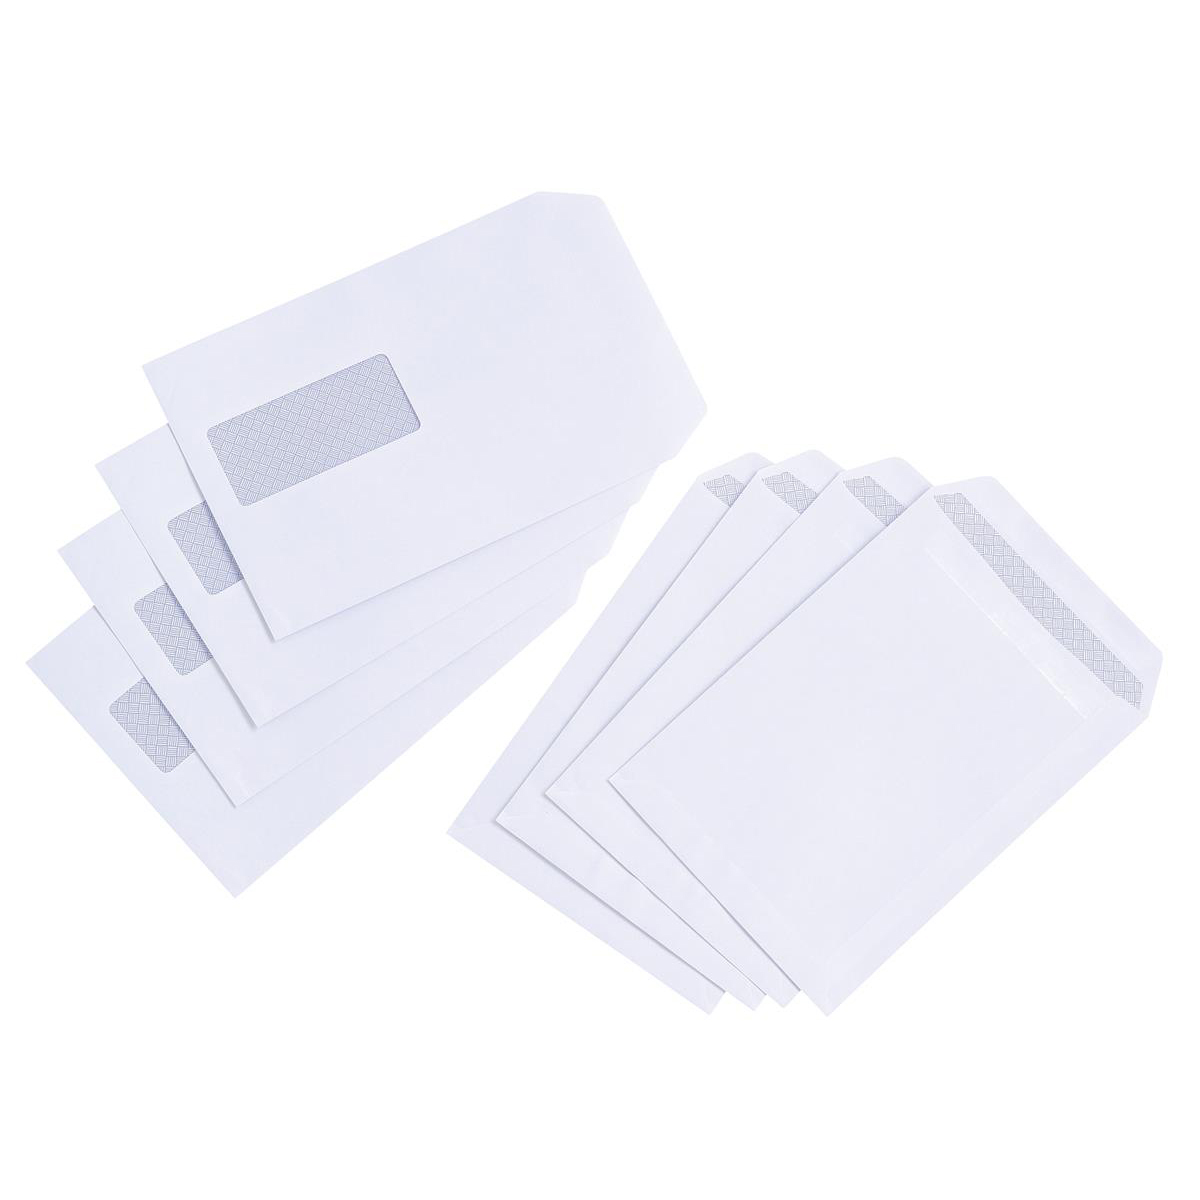 C5 5 Star Value Envelopes Pocket Press Seal Window 90gsm C5 229x162mm White Pack 500